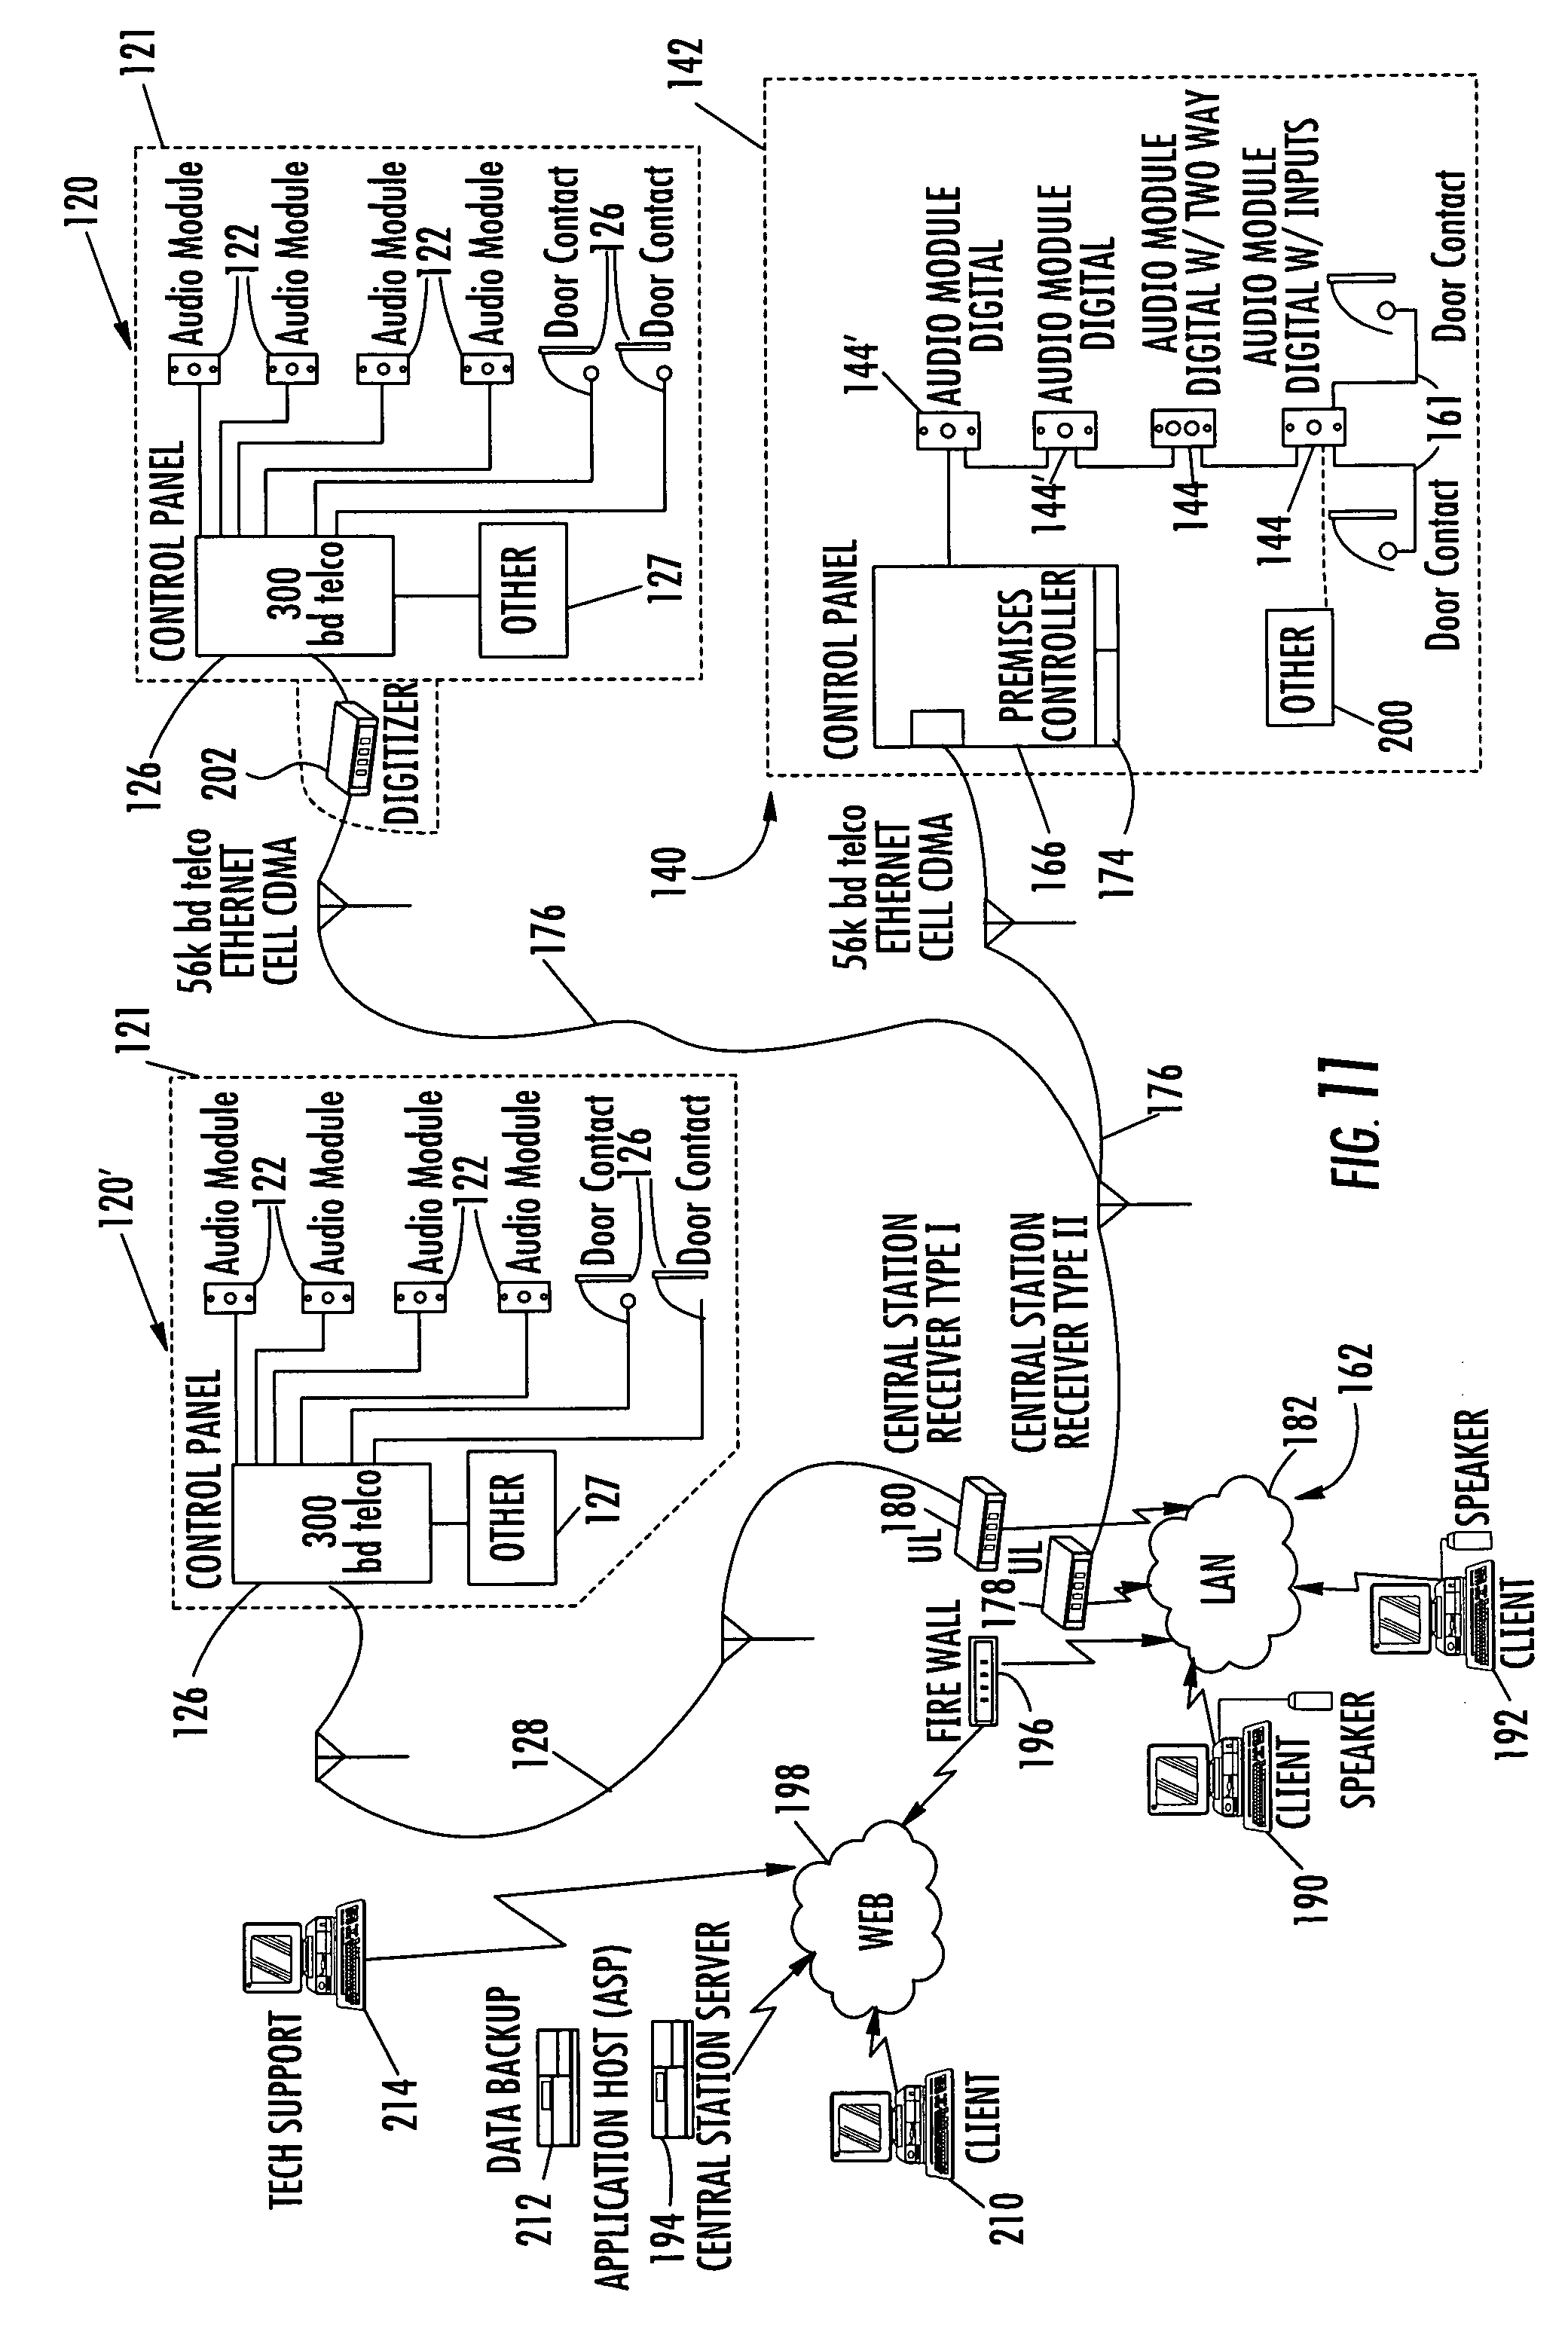 US20090058630A1 20090305 D00013 patent us20090058630 system and method for monitoring security sonitrol alarm wiring diagram at nearapp.co